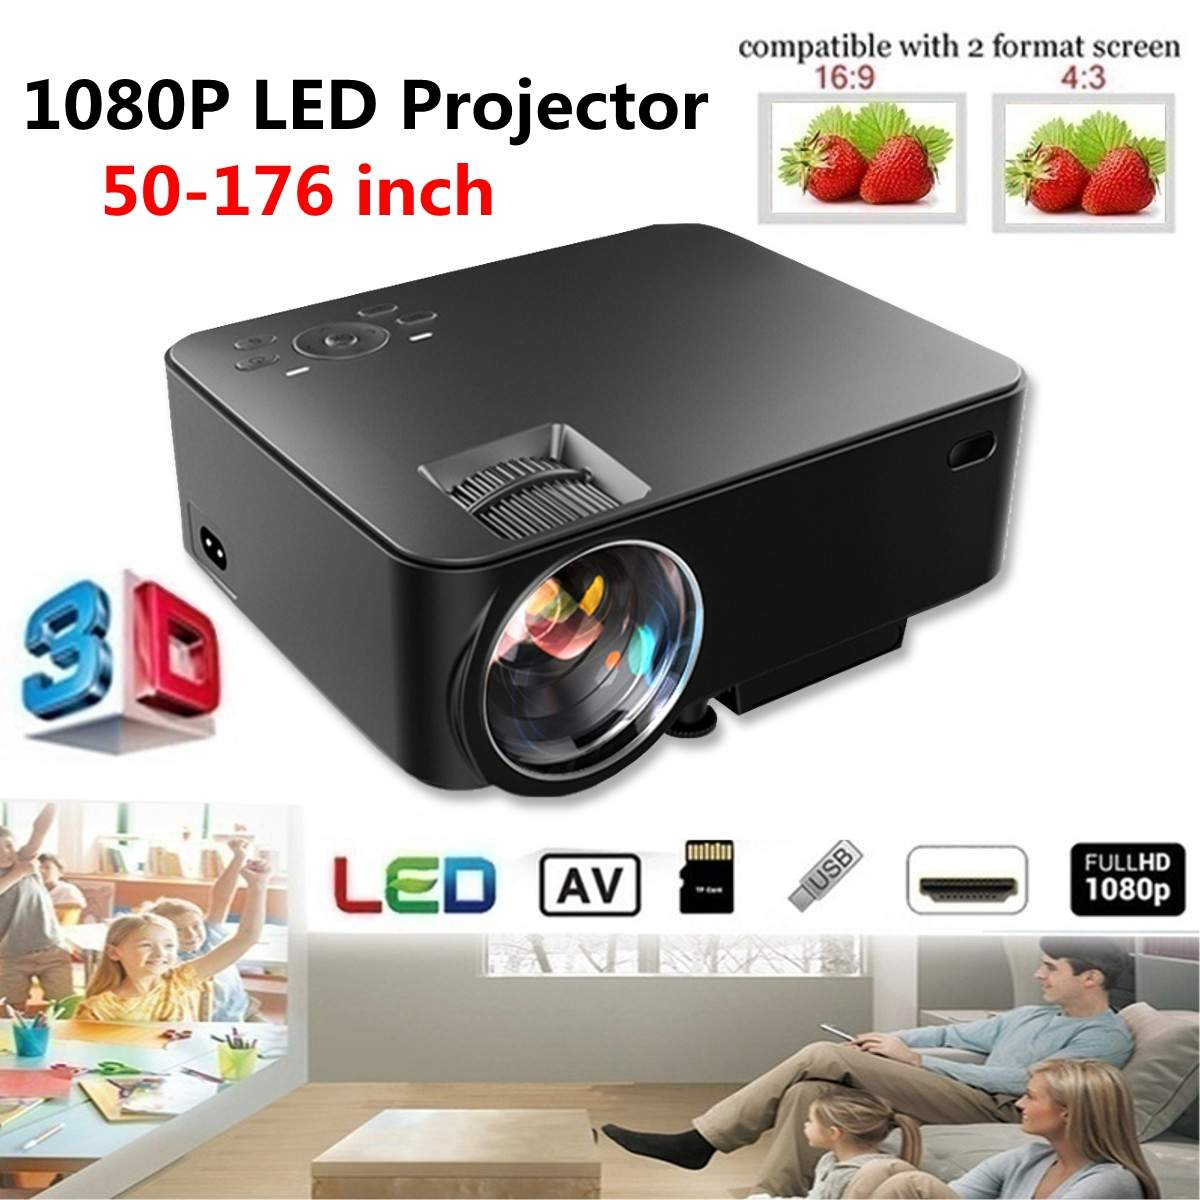 Portable Projector Home Theater Cinema Multimedia AV VGA USB 7000Lumens 1080P Full HD LED  with Remote ControlPortable Projector Home Theater Cinema Multimedia AV VGA USB 7000Lumens 1080P Full HD LED  with Remote Control